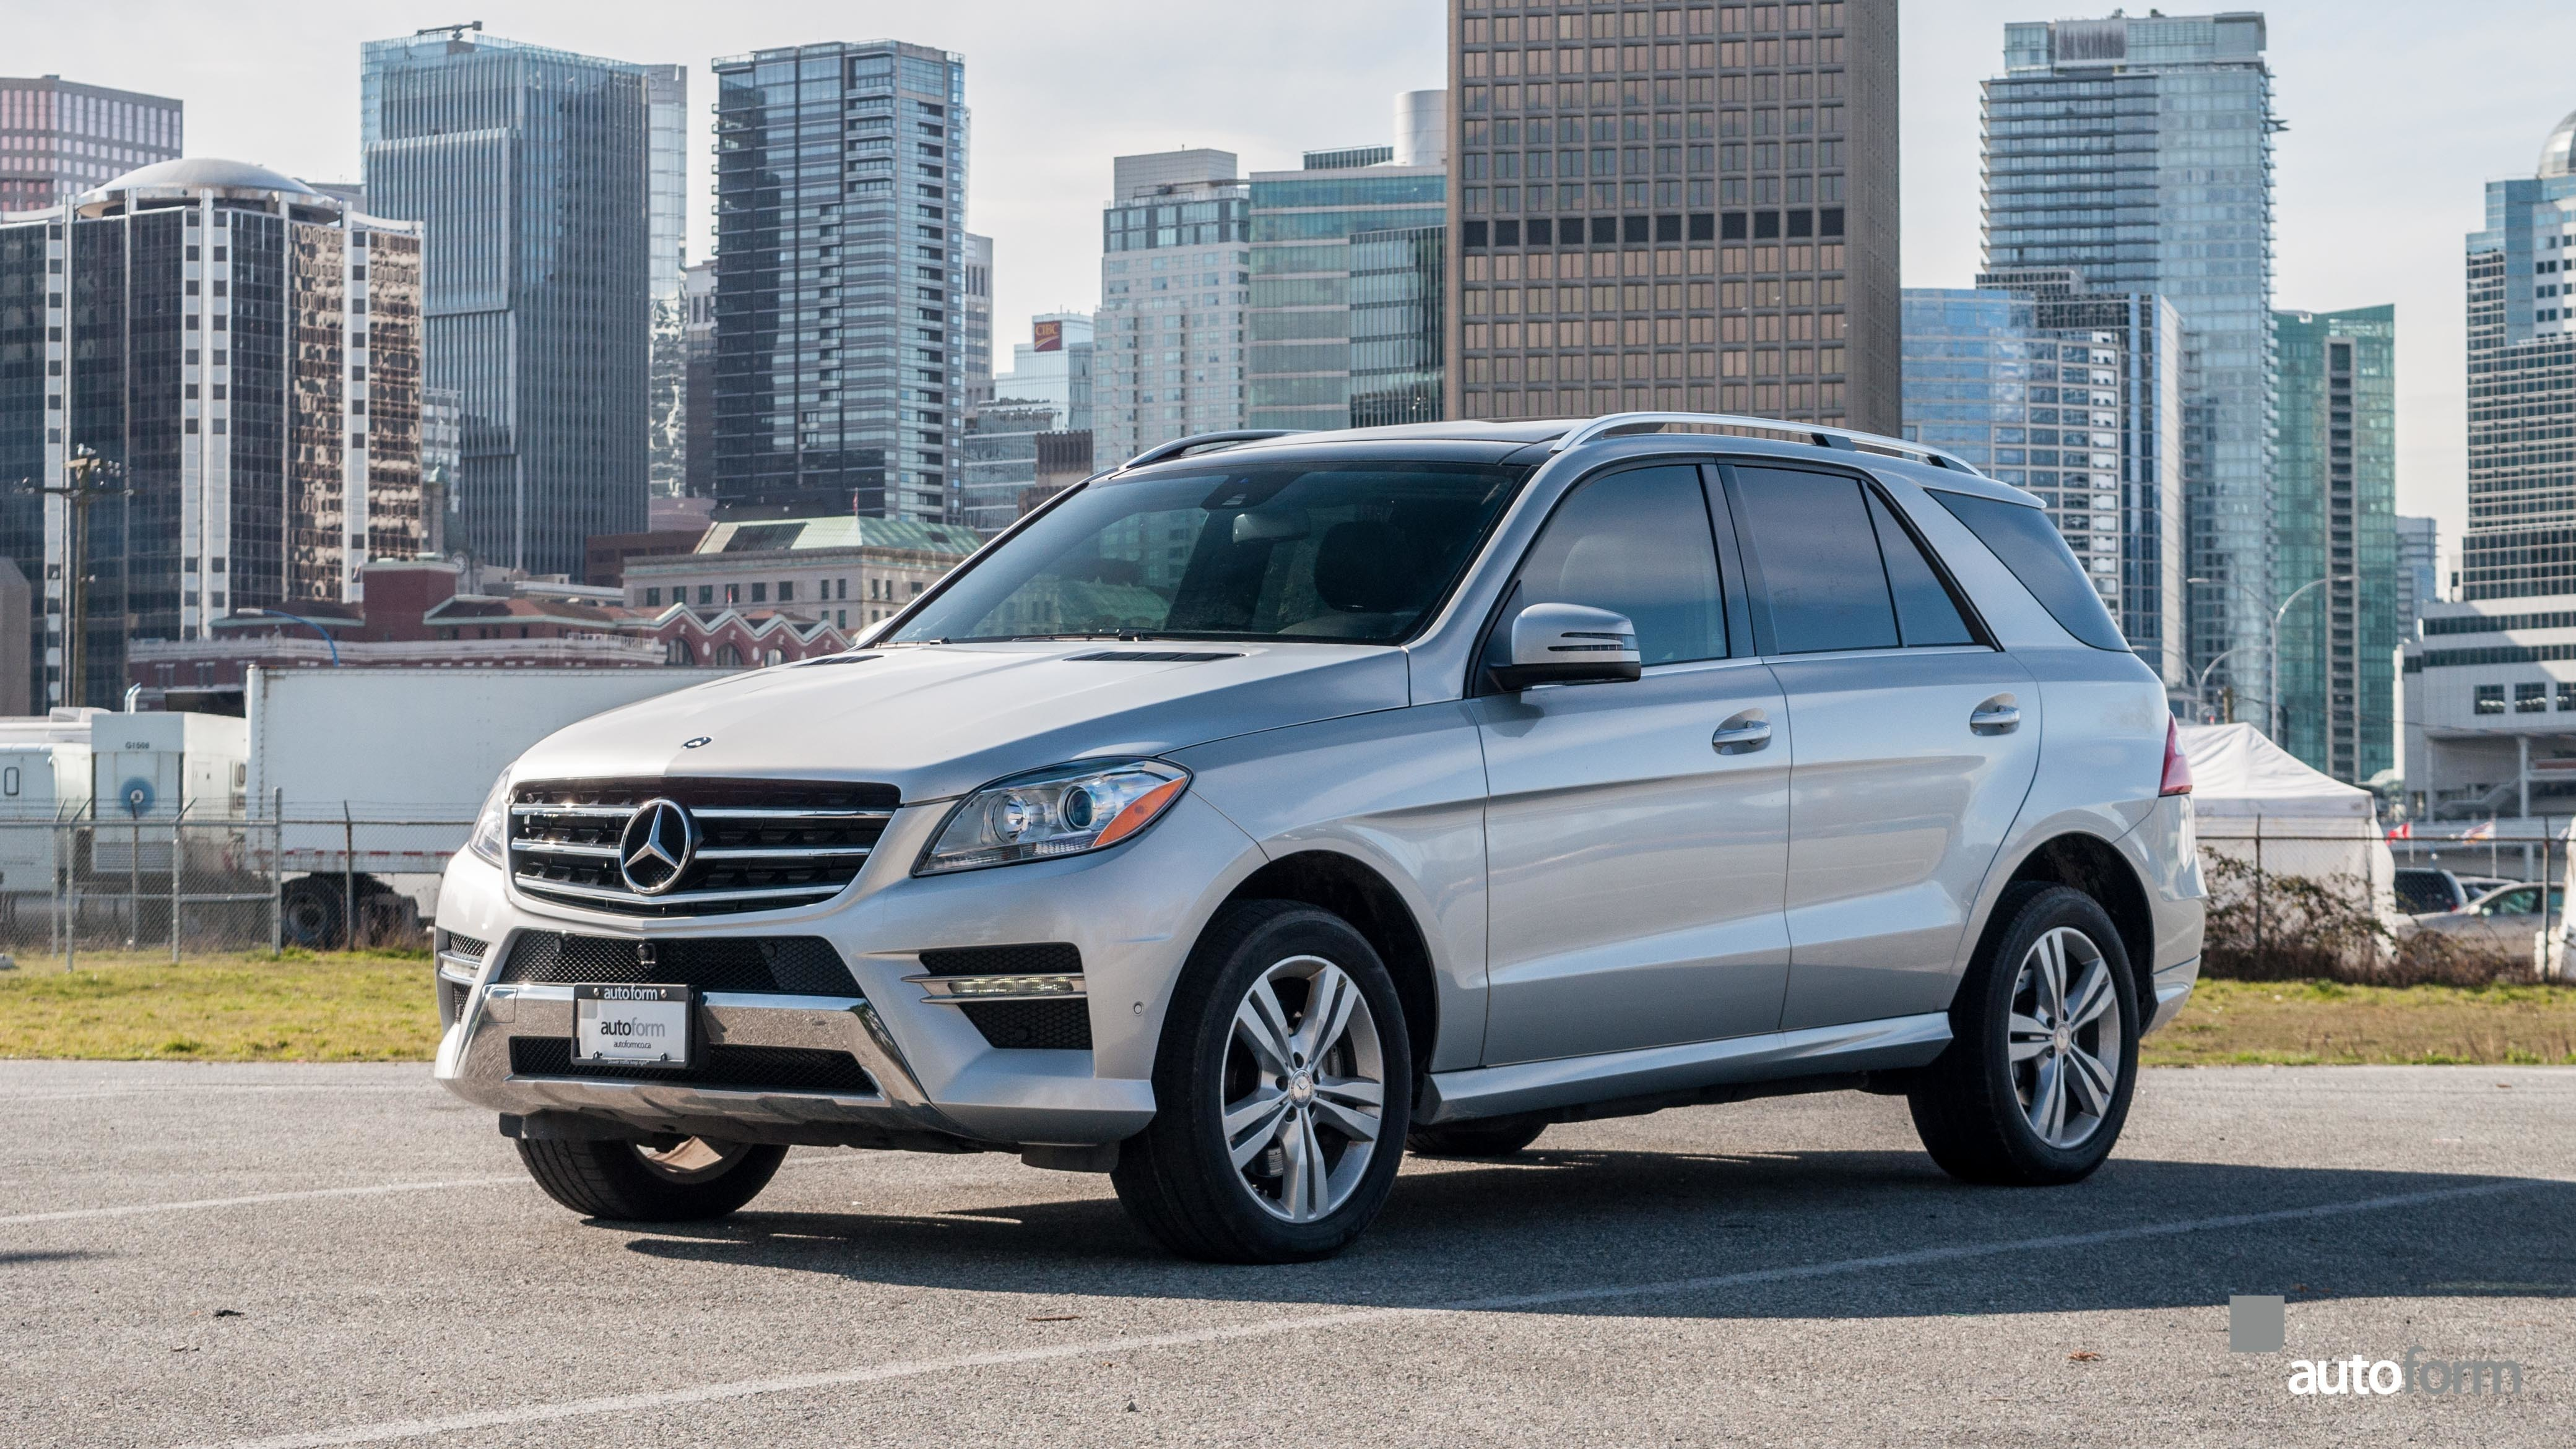 2015 mercedes benz ml350 bluetec 4matic autoform for Mercedes benz s 350 bluetec